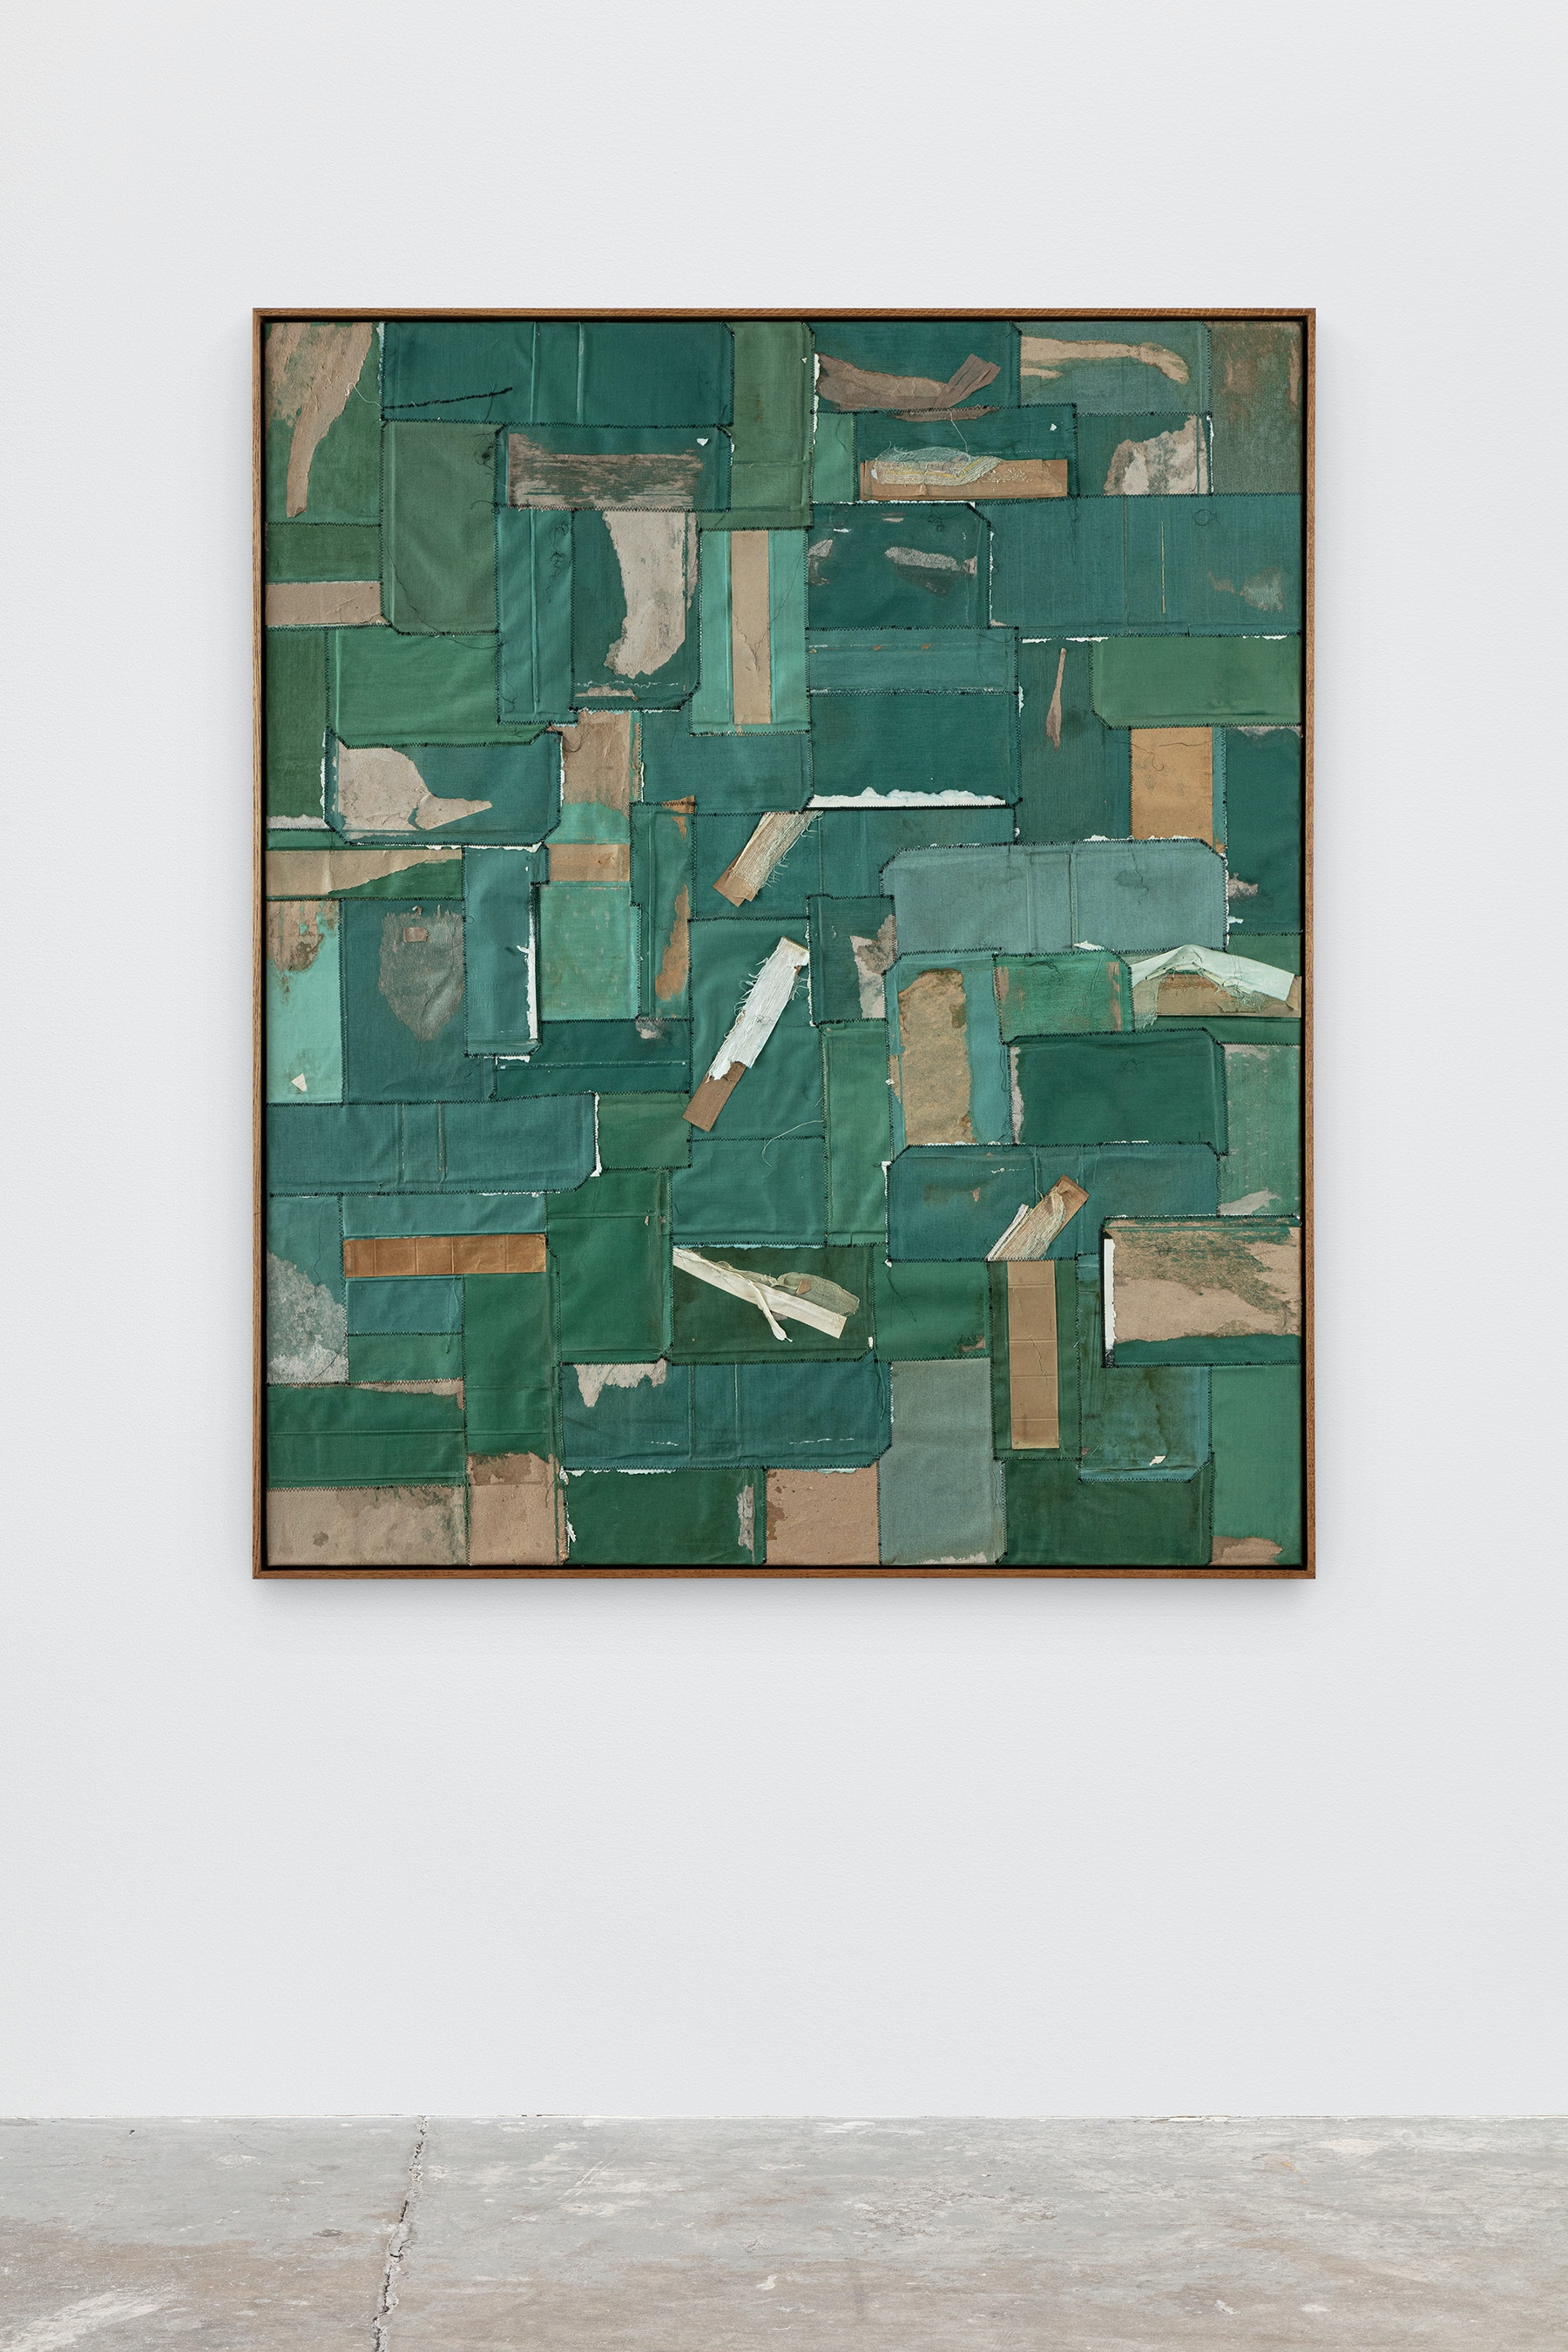 """Samuel Levi Jones """"Action Over Words,"""" 2021 Law book covers on canvas 60"""" x 50"""" [HxW] (152.4 x 127 cm) Inventory #JON139 Courtesy of the artist and Vielmetter Los Angeles Photo credit: Evan Bedford"""